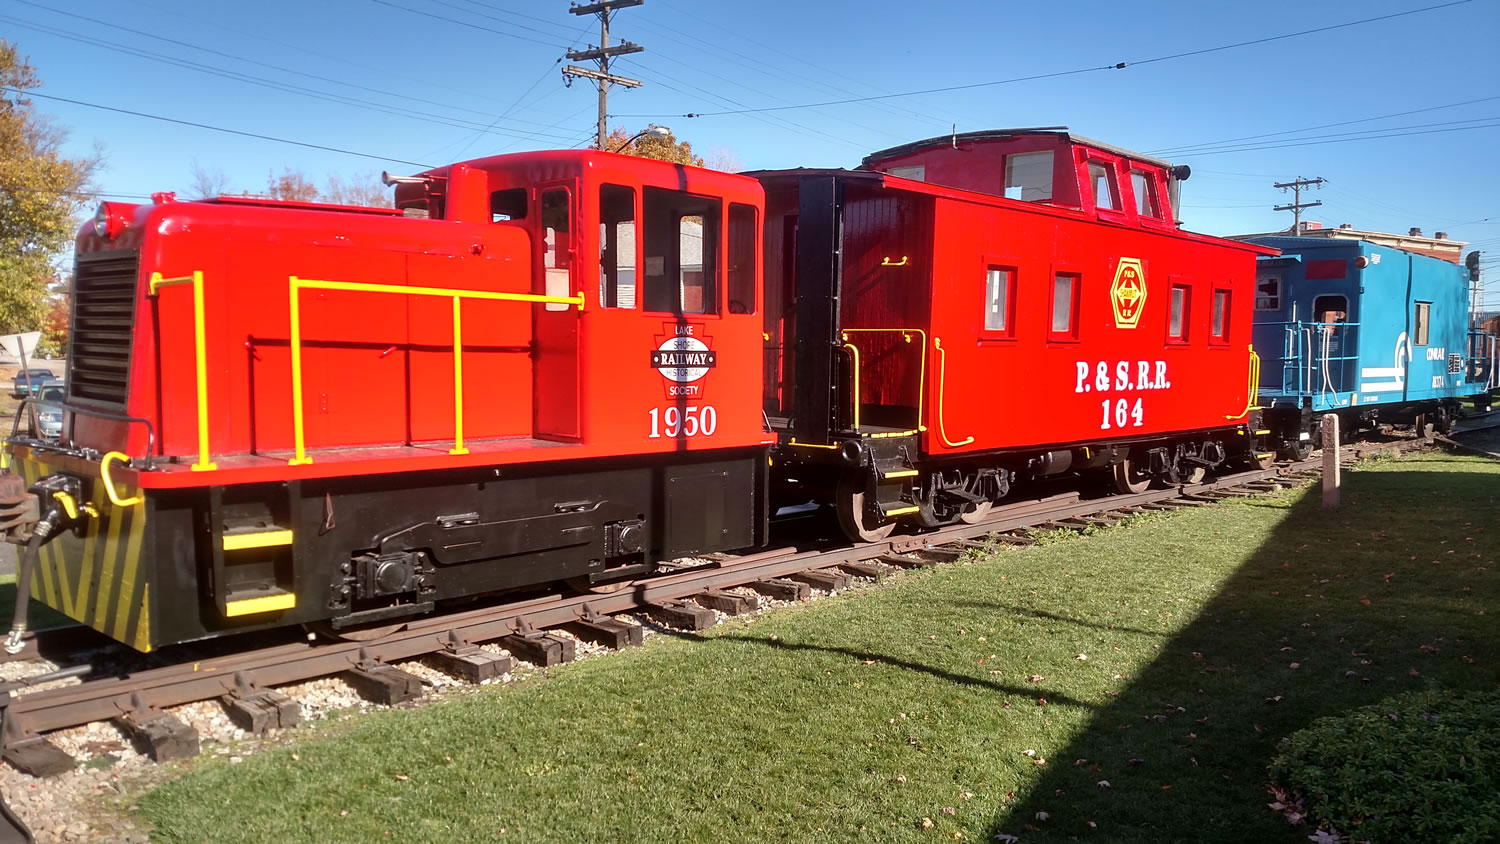 Our current front lineup at the Lake Shore Railway Museum. Our GE 25 tonner, the Pittsburg and Shawmut caboose and our latest addition , a Conrail caboose.